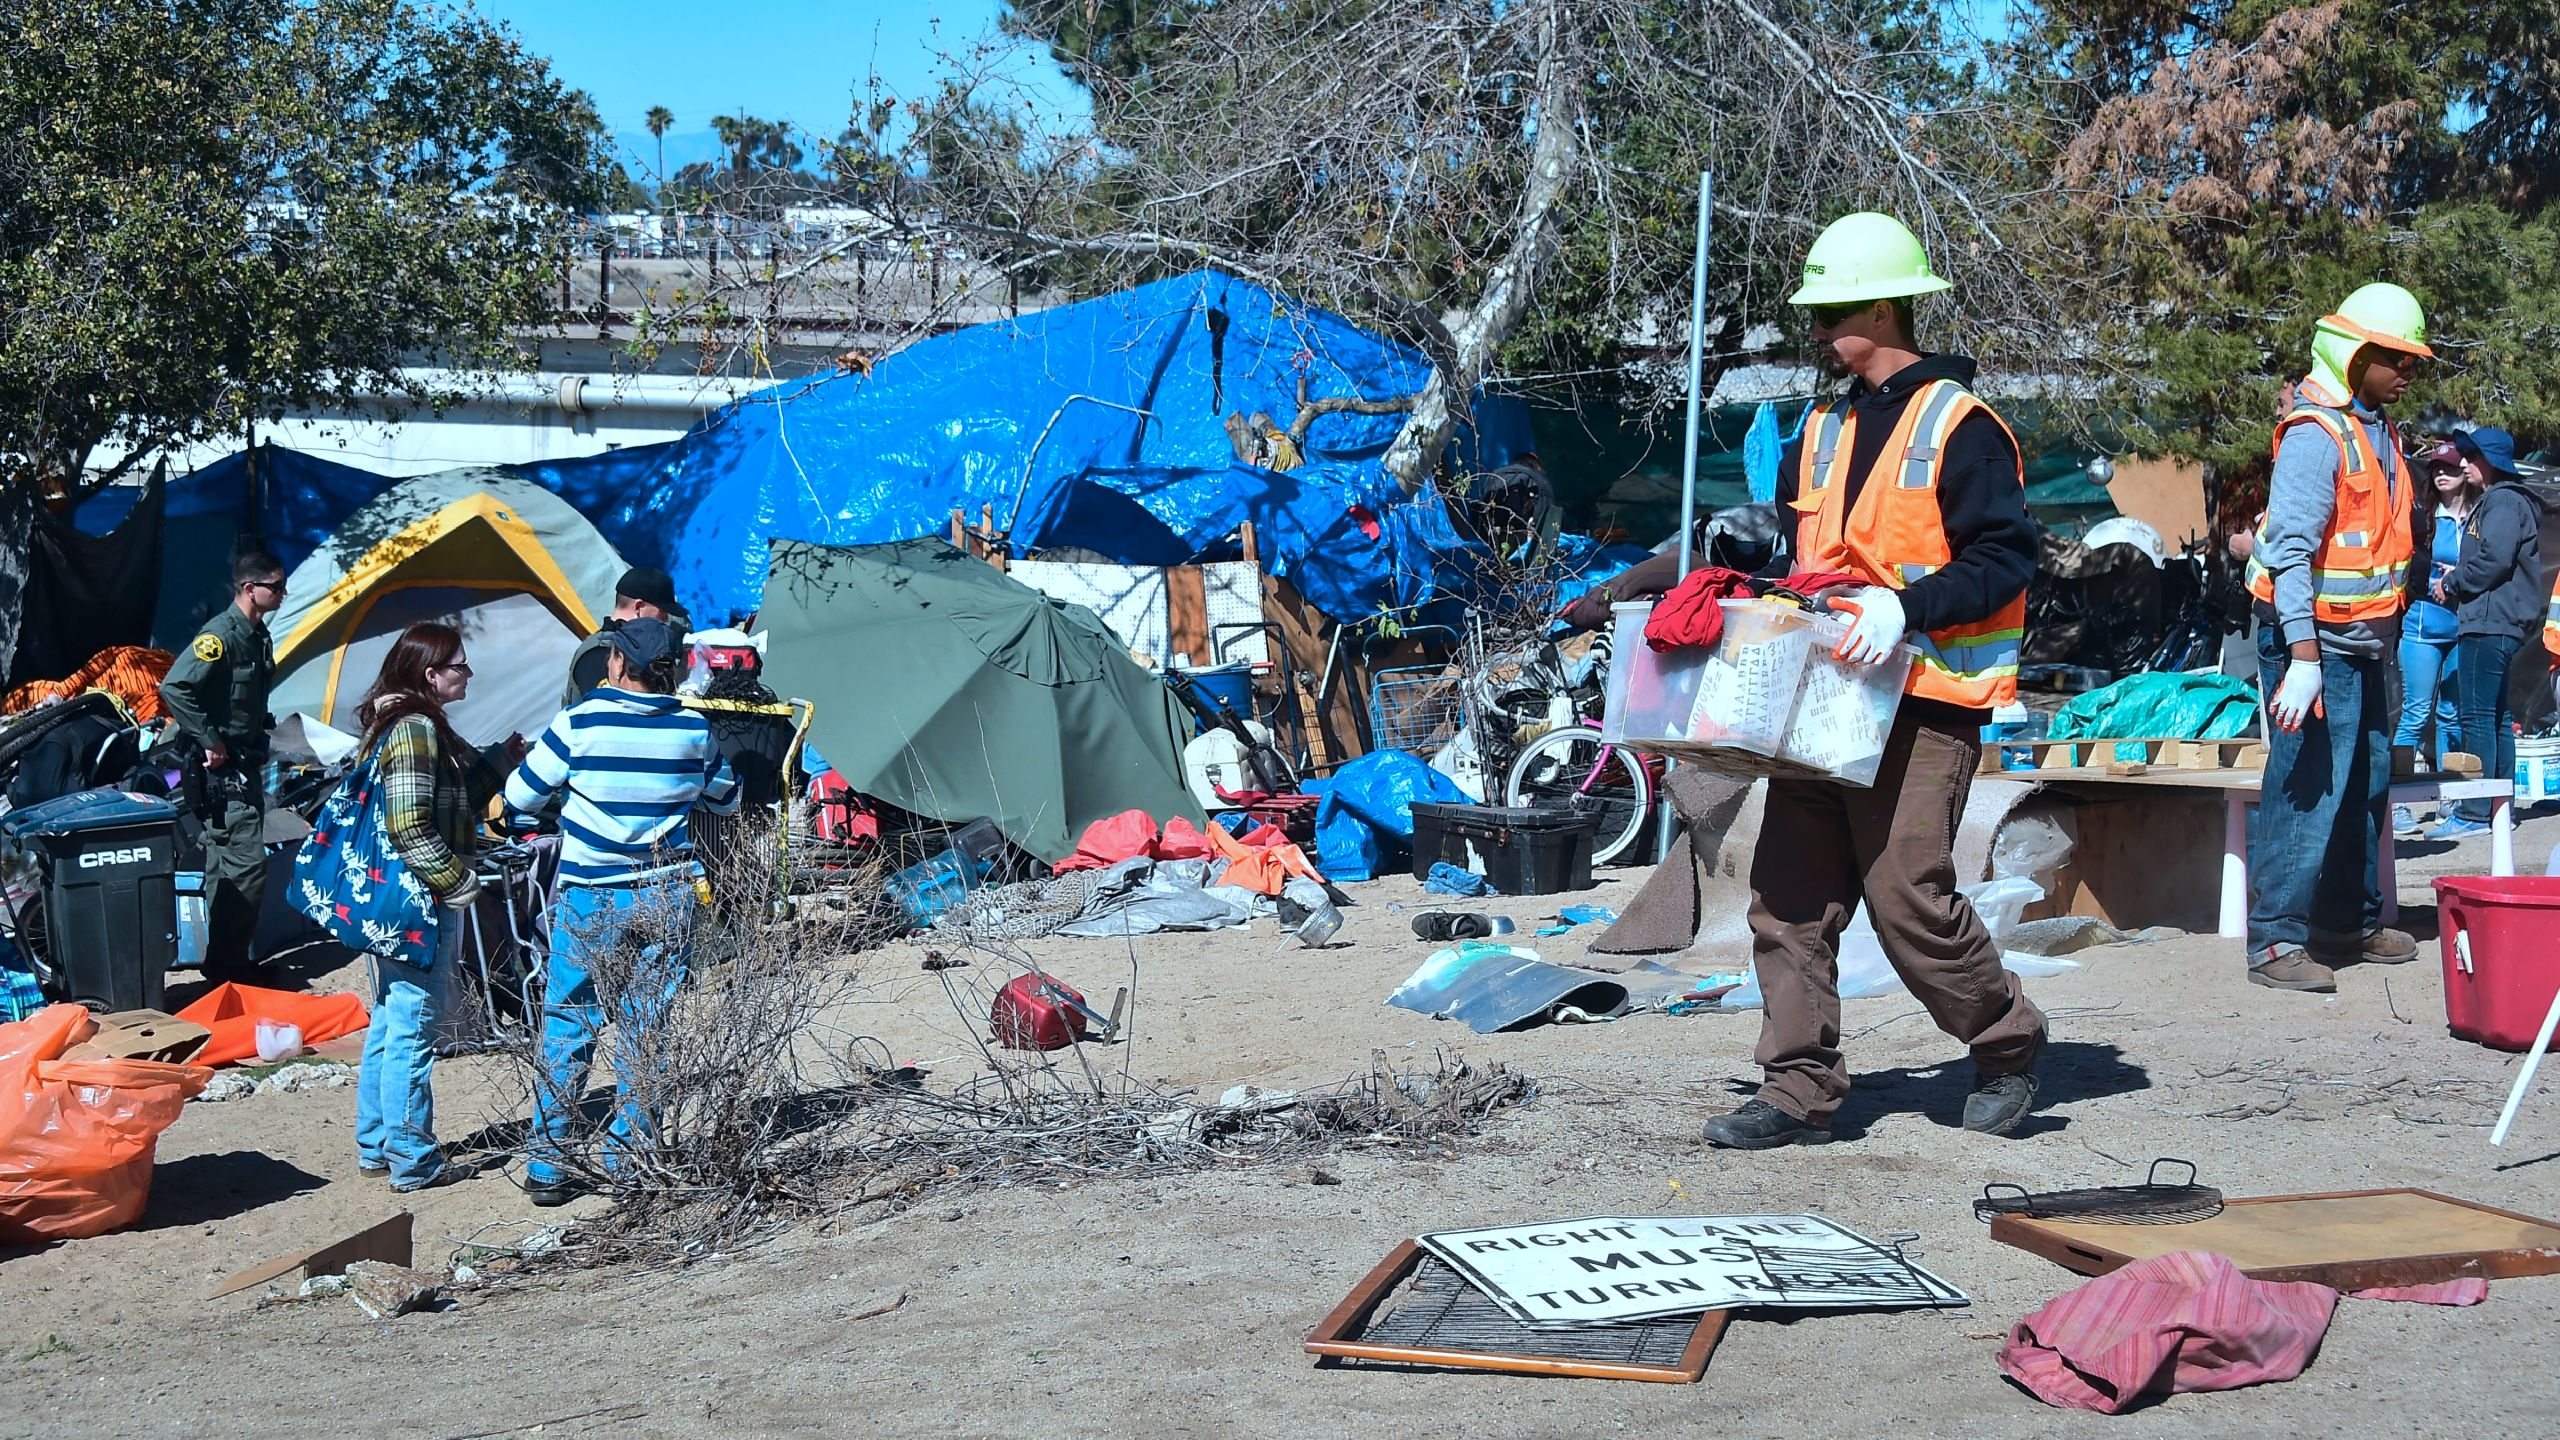 County workers clear a homeless encampment near the Santa Ana River on Feb.20, 2018, in Anaheim.(Credit: Frederic J. Brown/AFP via Getty Images)